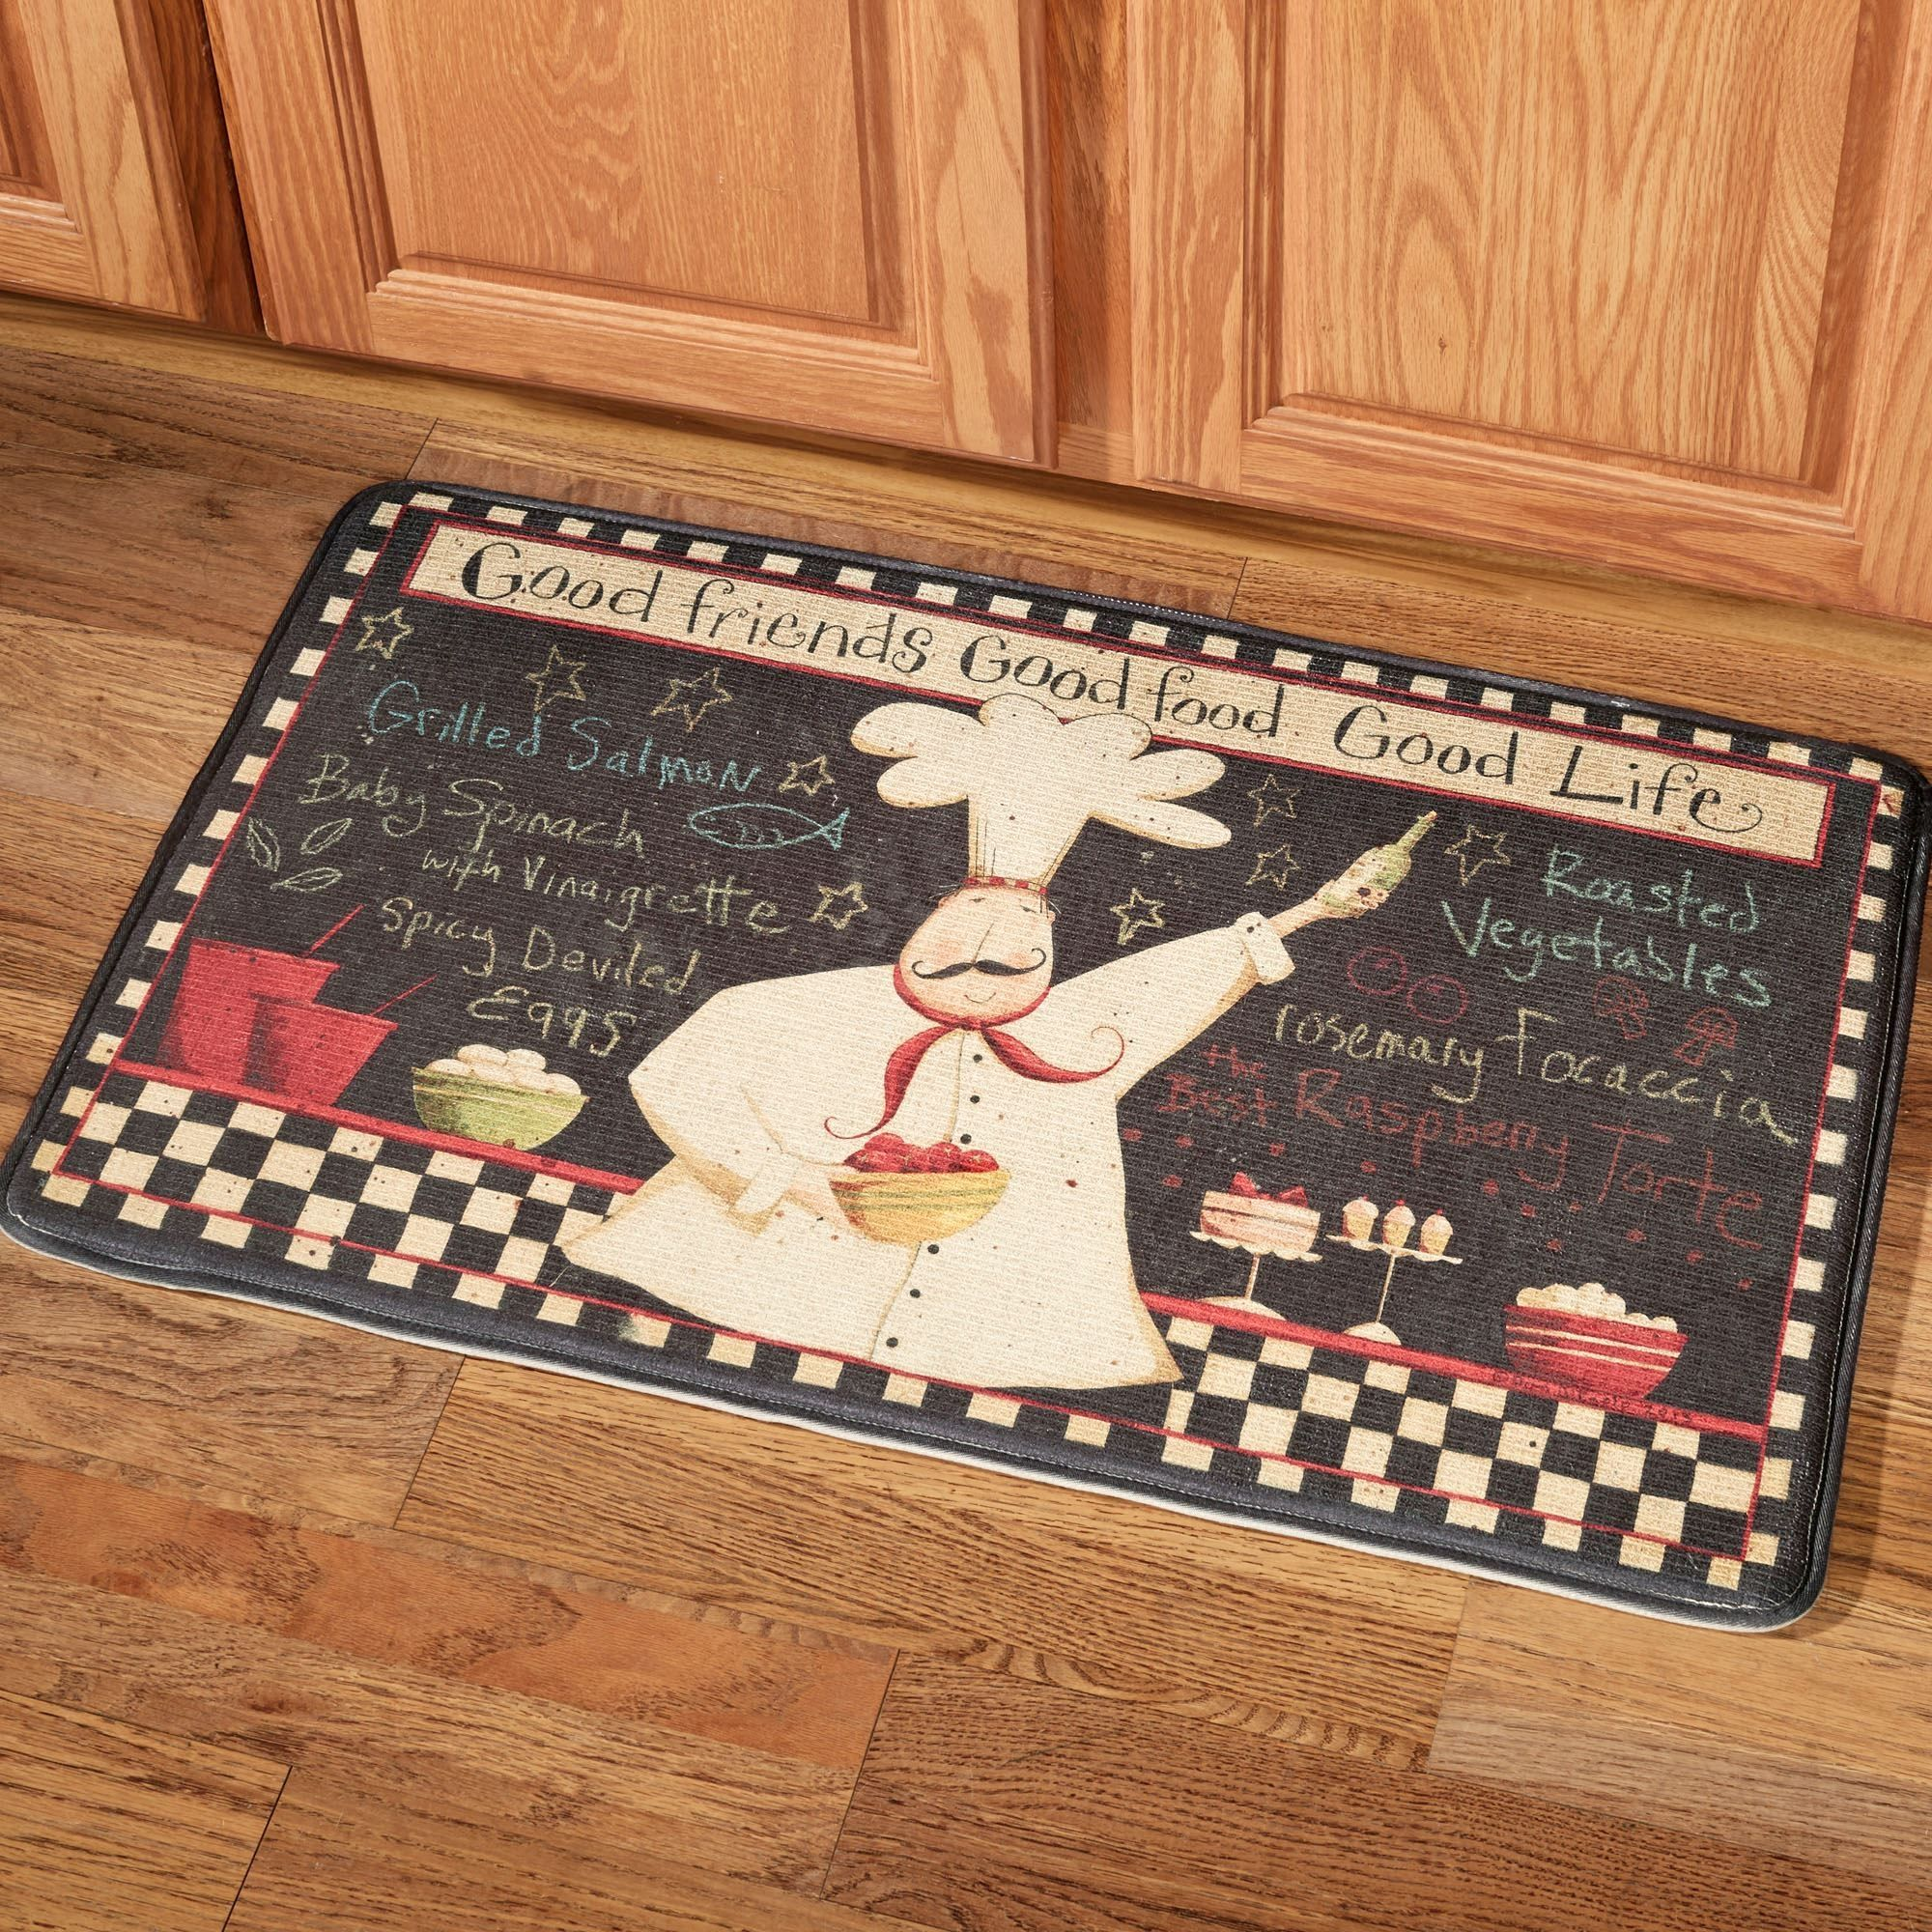 Foam Floor Mats For Kitchen | http://web4top.com/ | Pinterest ...